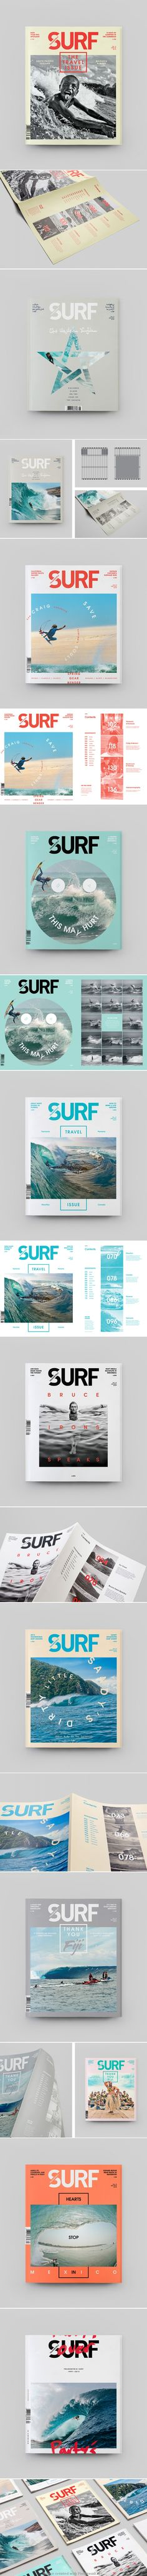 Inspirational Modern Magazine Re-Design – Transworld Surf